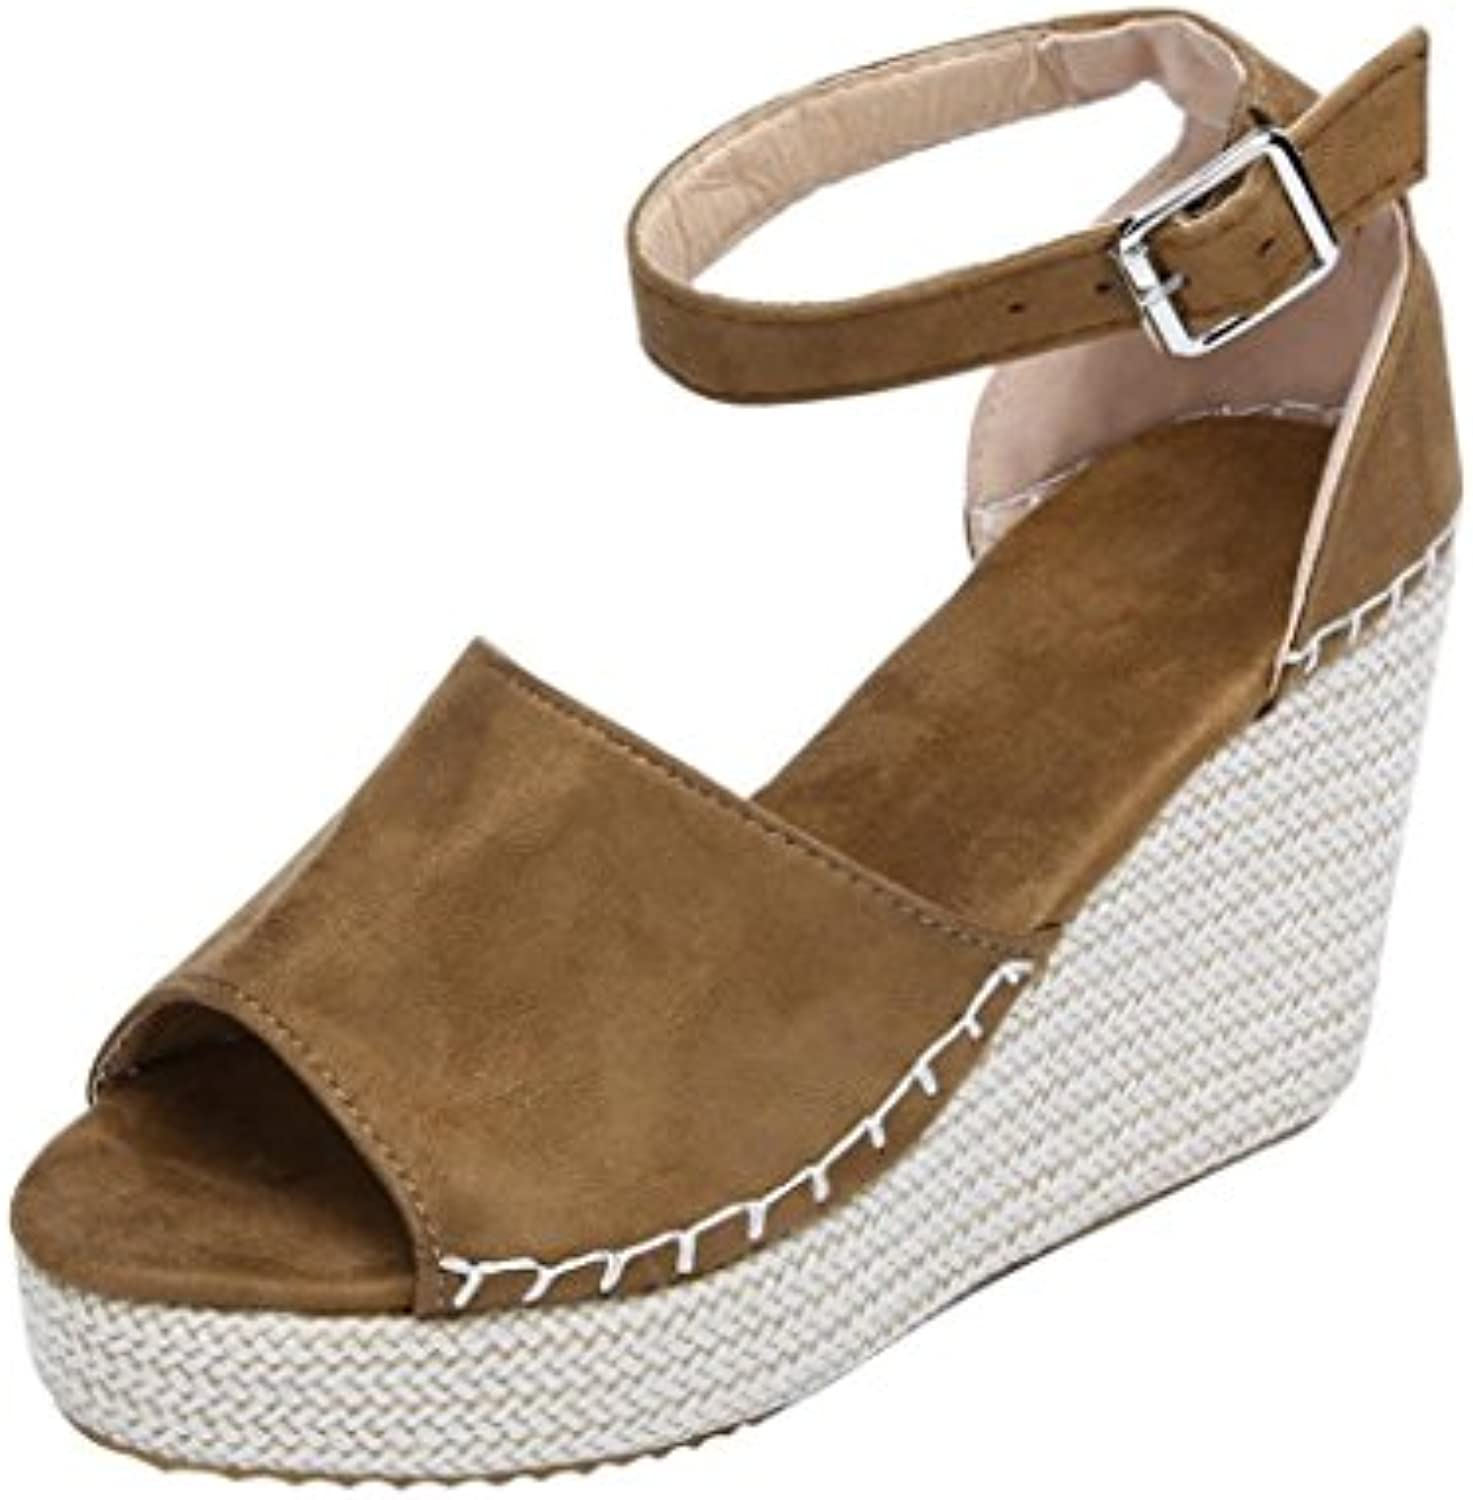 3cddf099f3e9   10085 Tefamore   10085 Tefamore   10085 Tefamore Women Fashion Dull  Polish Sandals New Sewing Peep Toe Wedges Hasp Flatform Shoes B07FY54RMC  Parent d8f47b